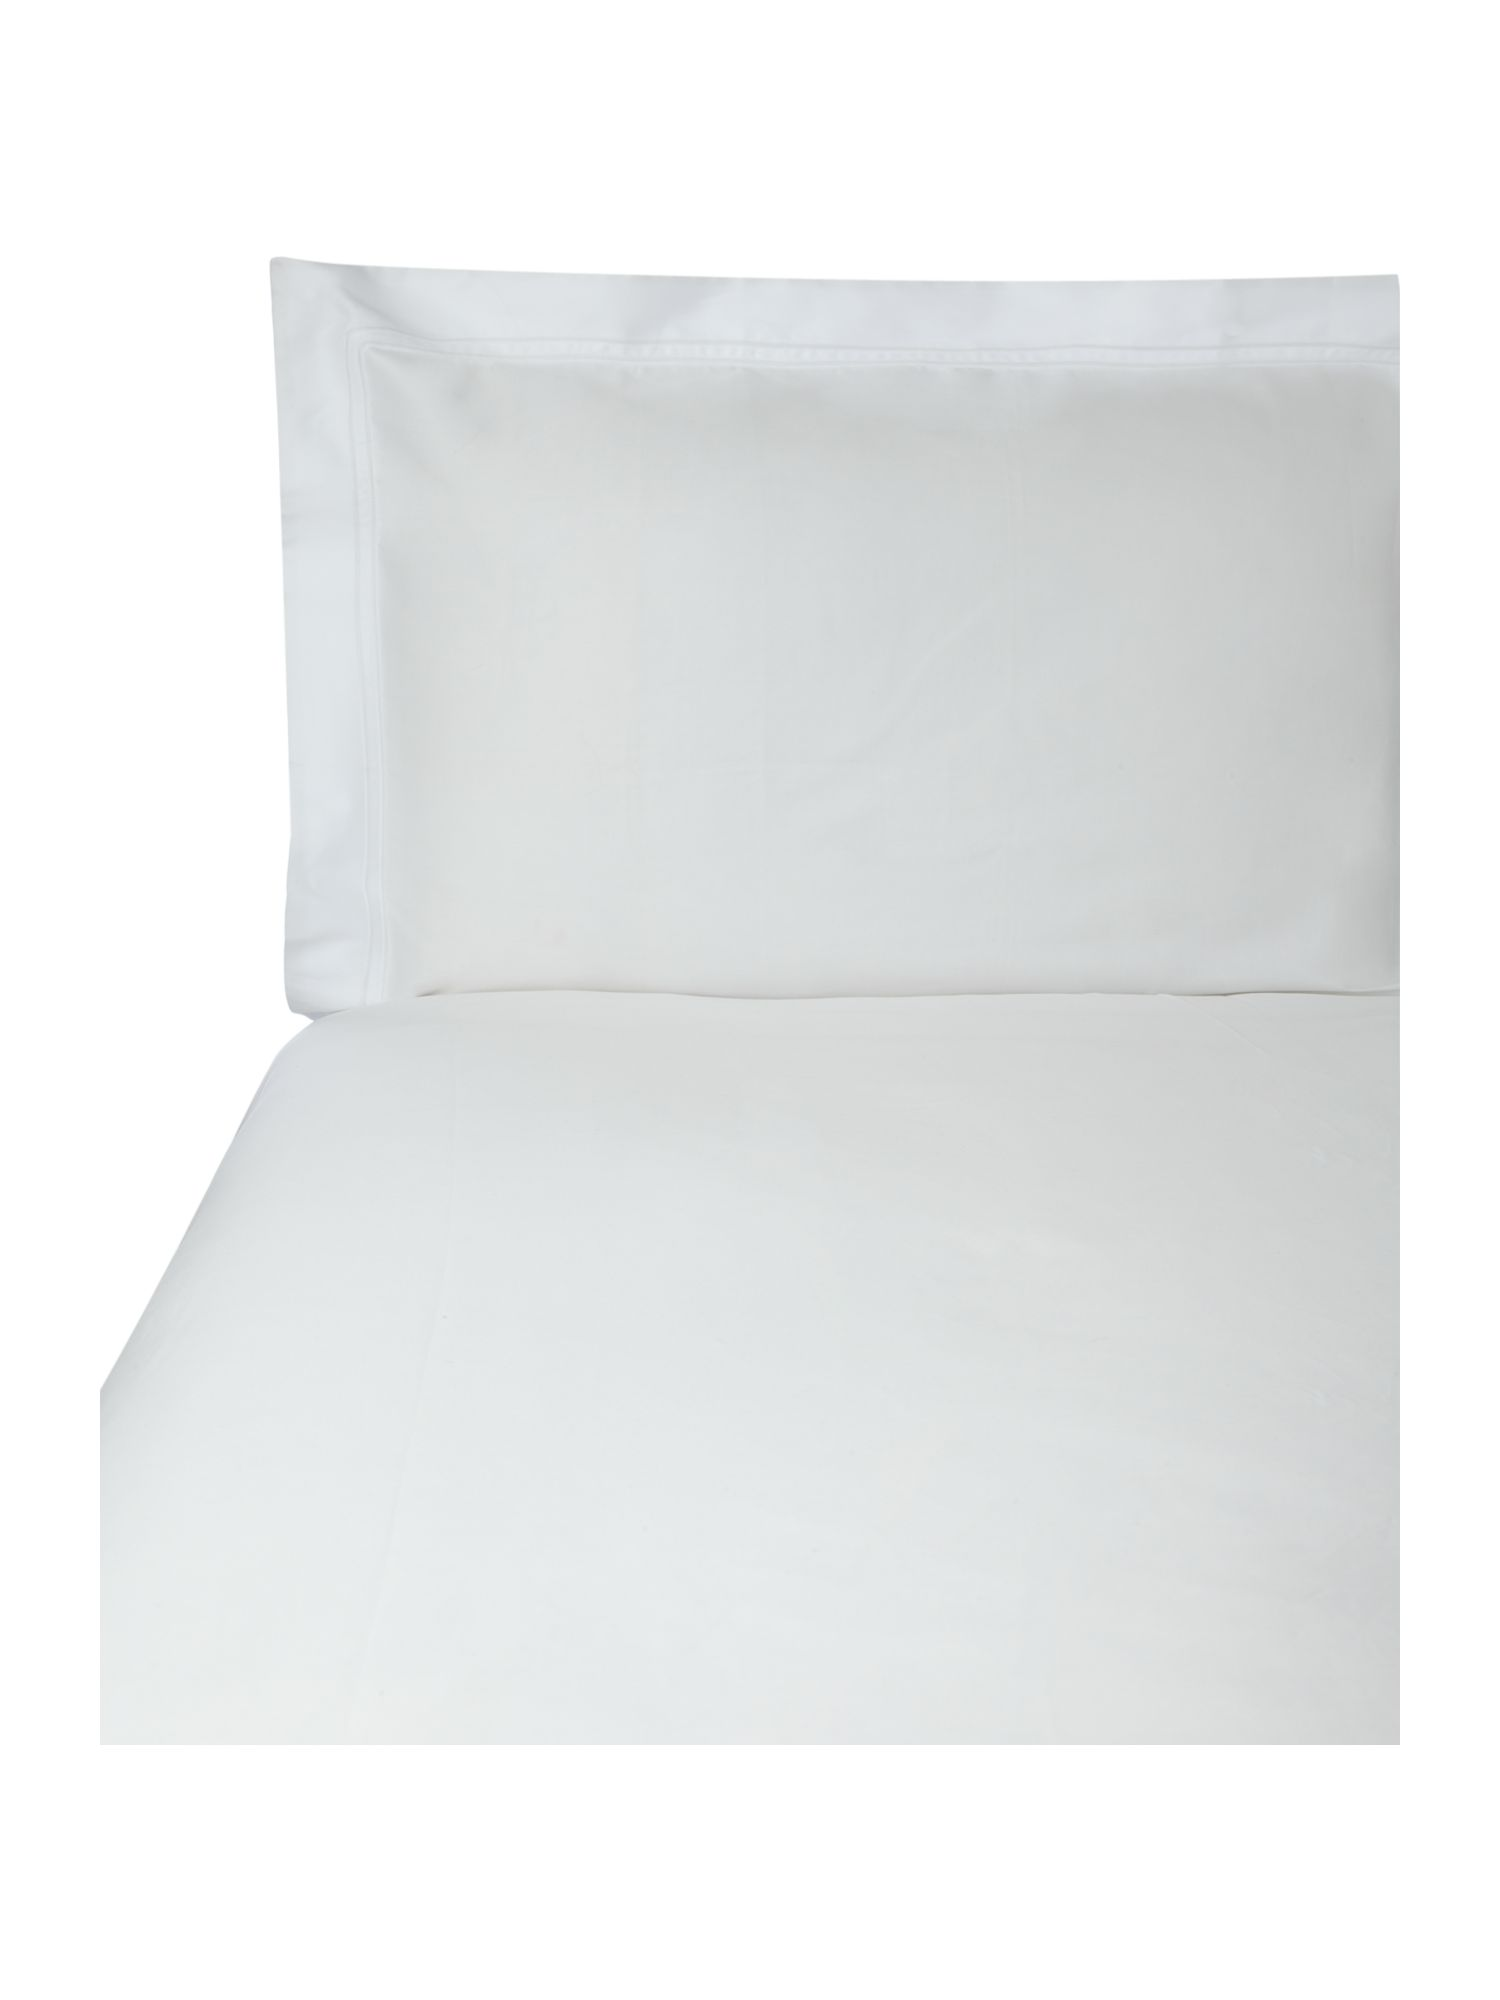 Yves Delorme Yves Delorme Triomphe blanc king fitted sheet